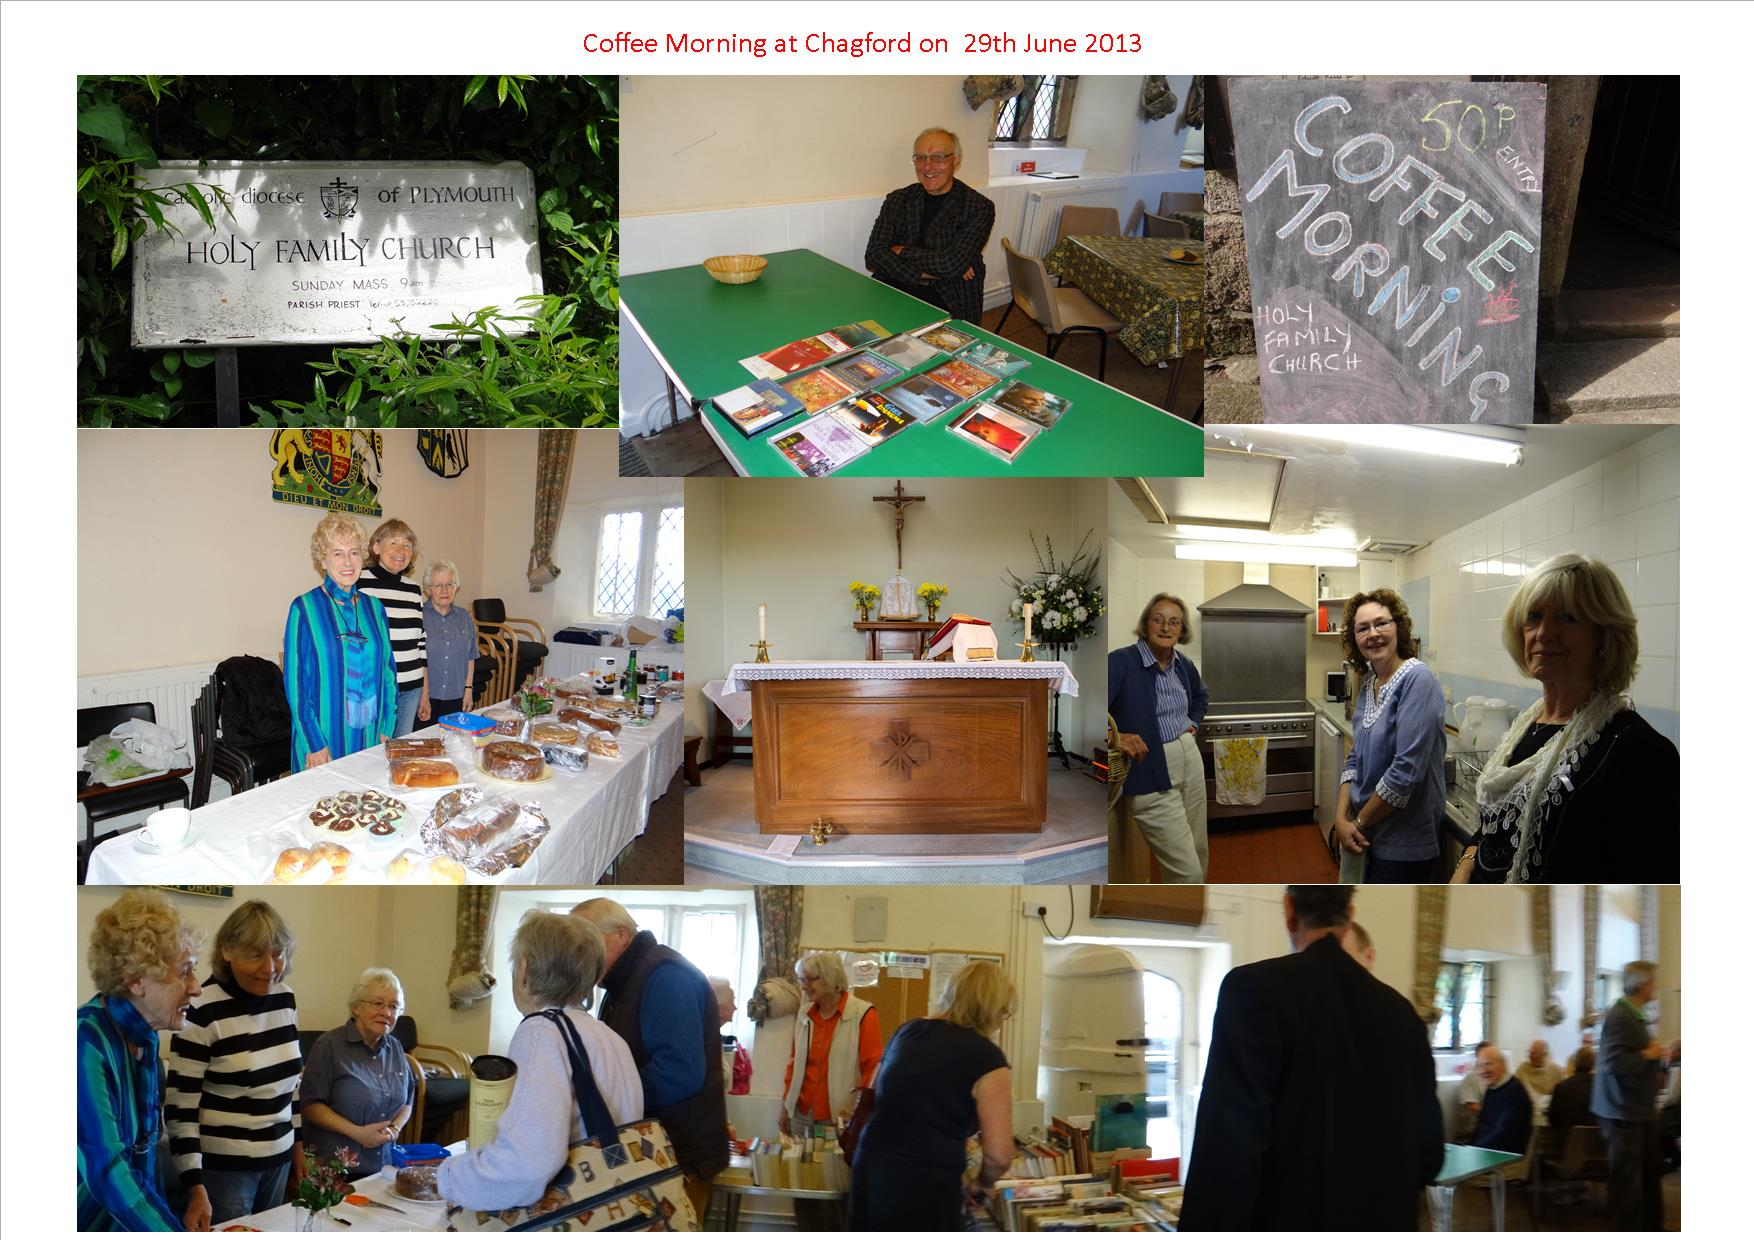 chagford-coffee-morning-29th-june-2013_0